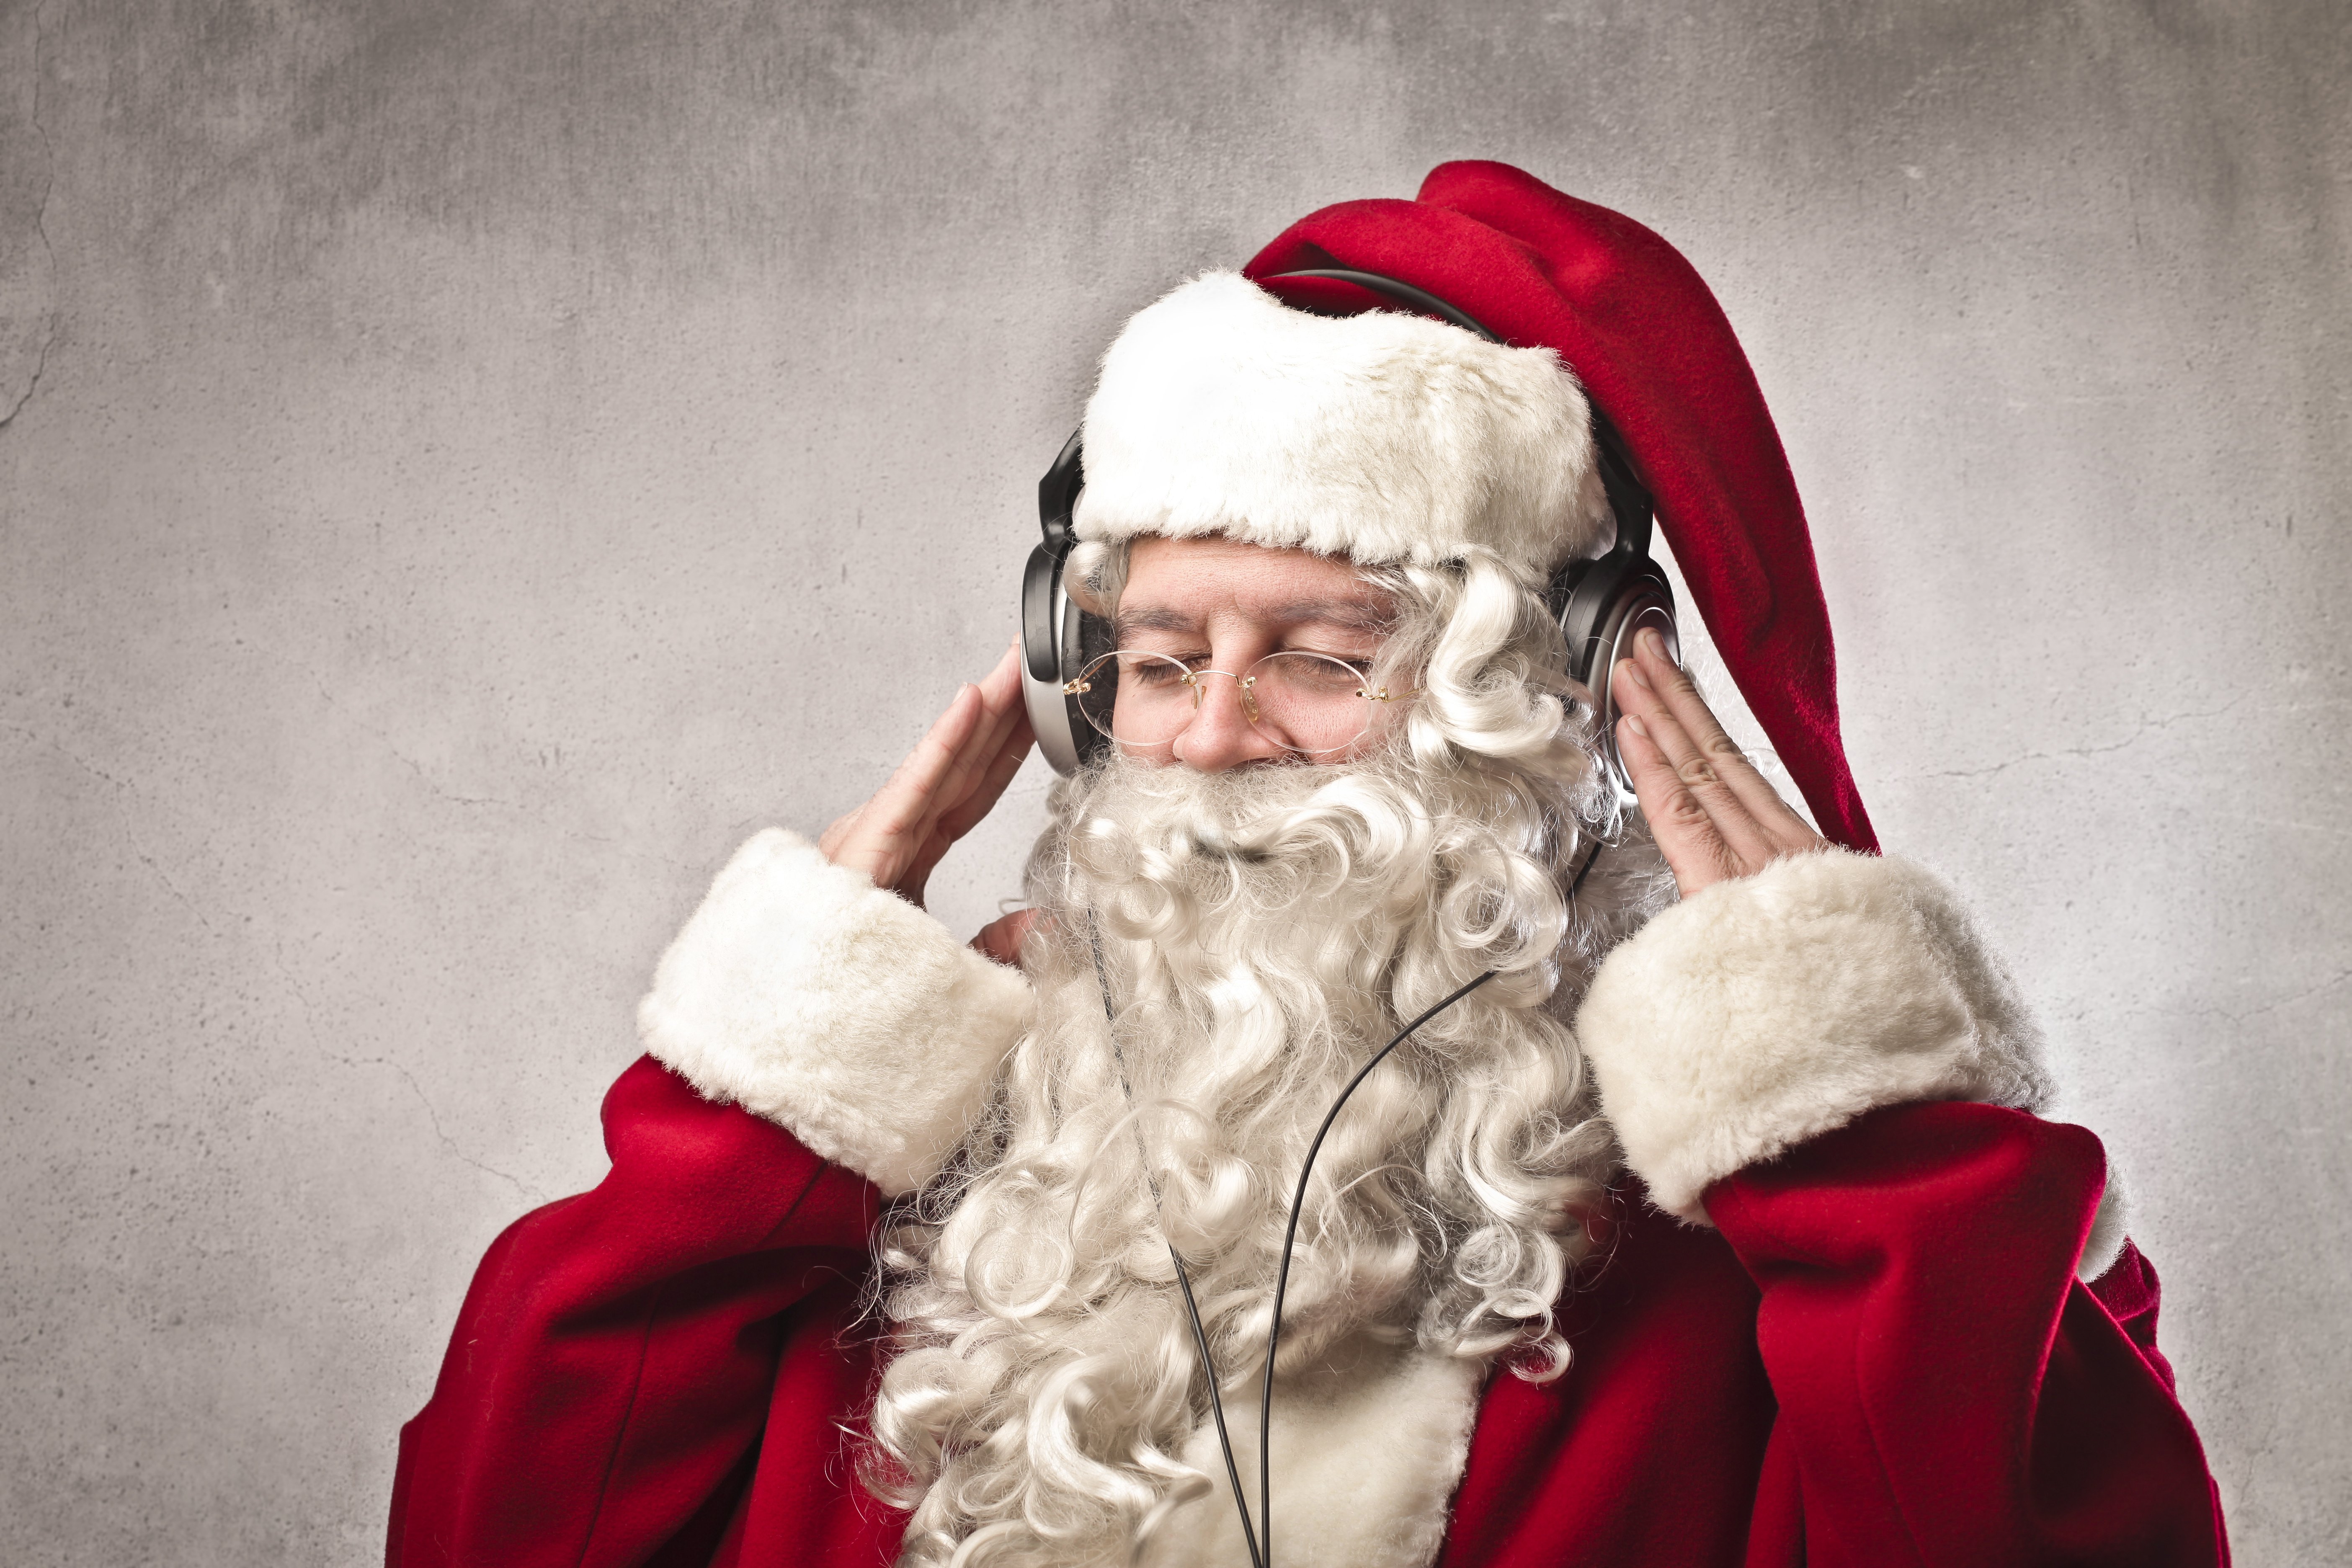 A person dressed in a Santa costume and wearing over-ear headphones.